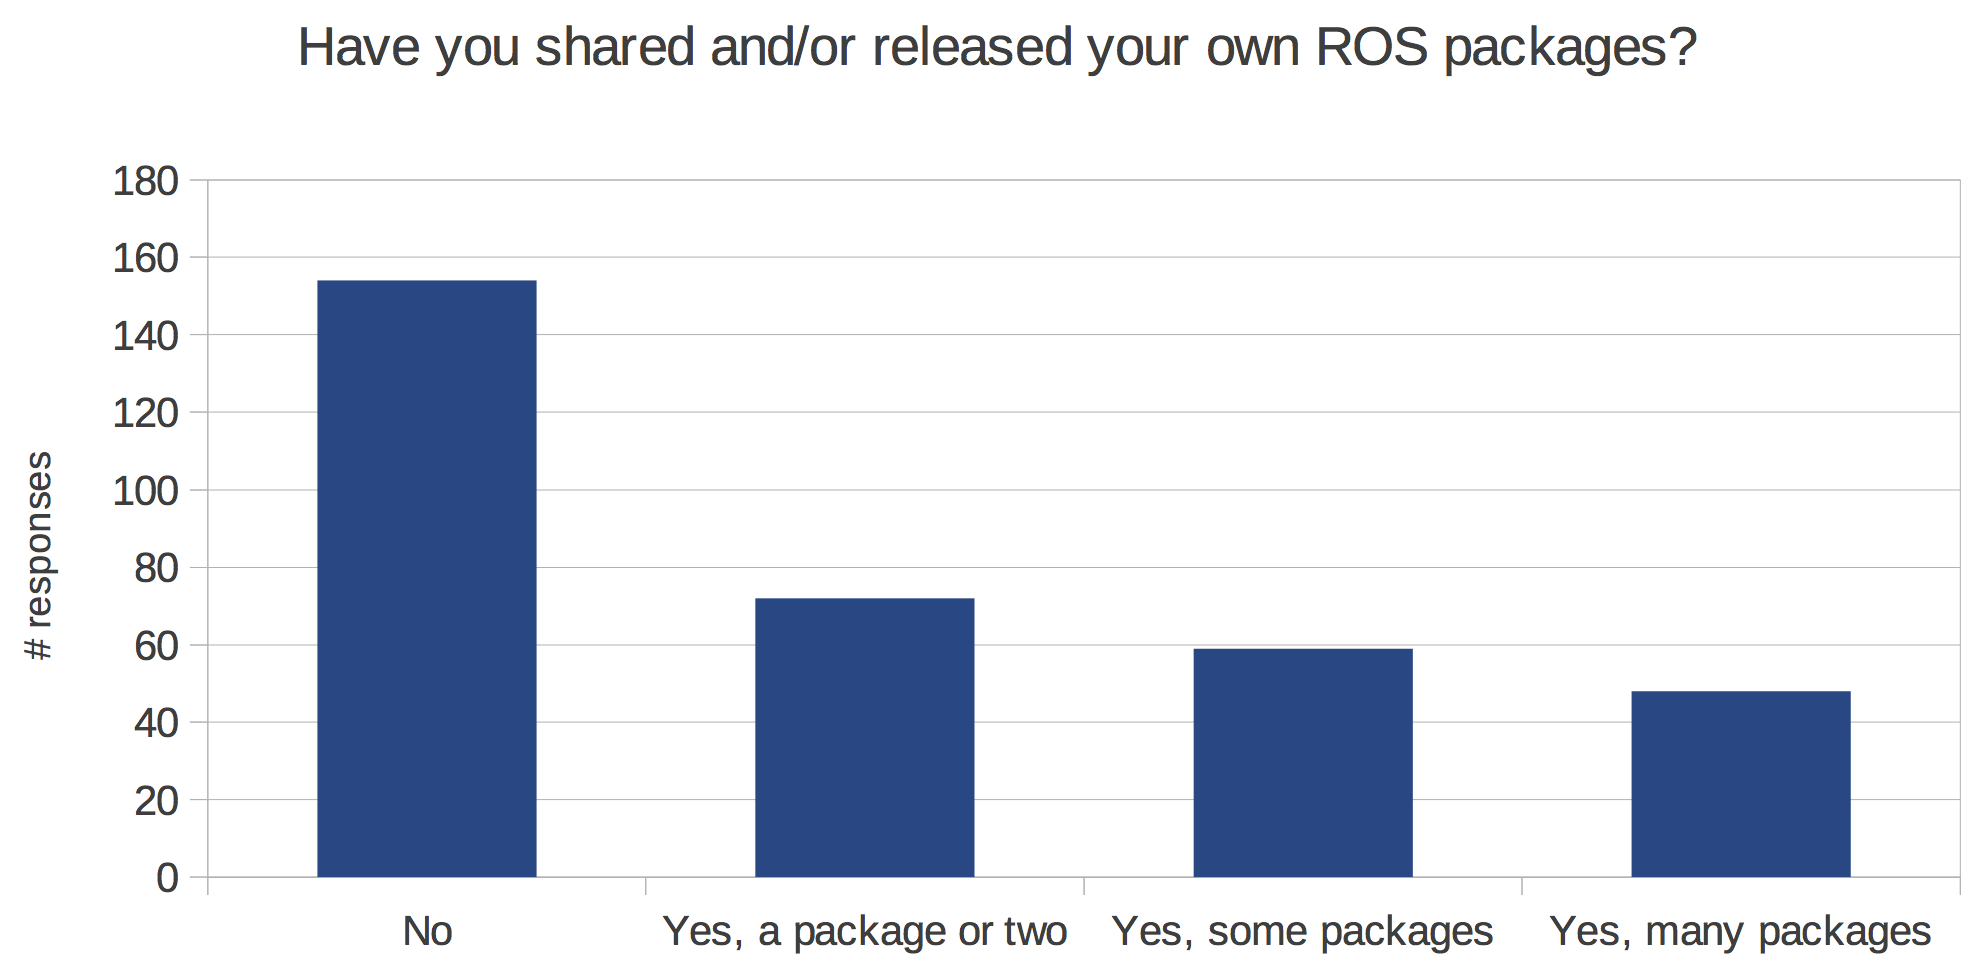 http://www.ros.org/news/2014/04/01/released-pkgs.png